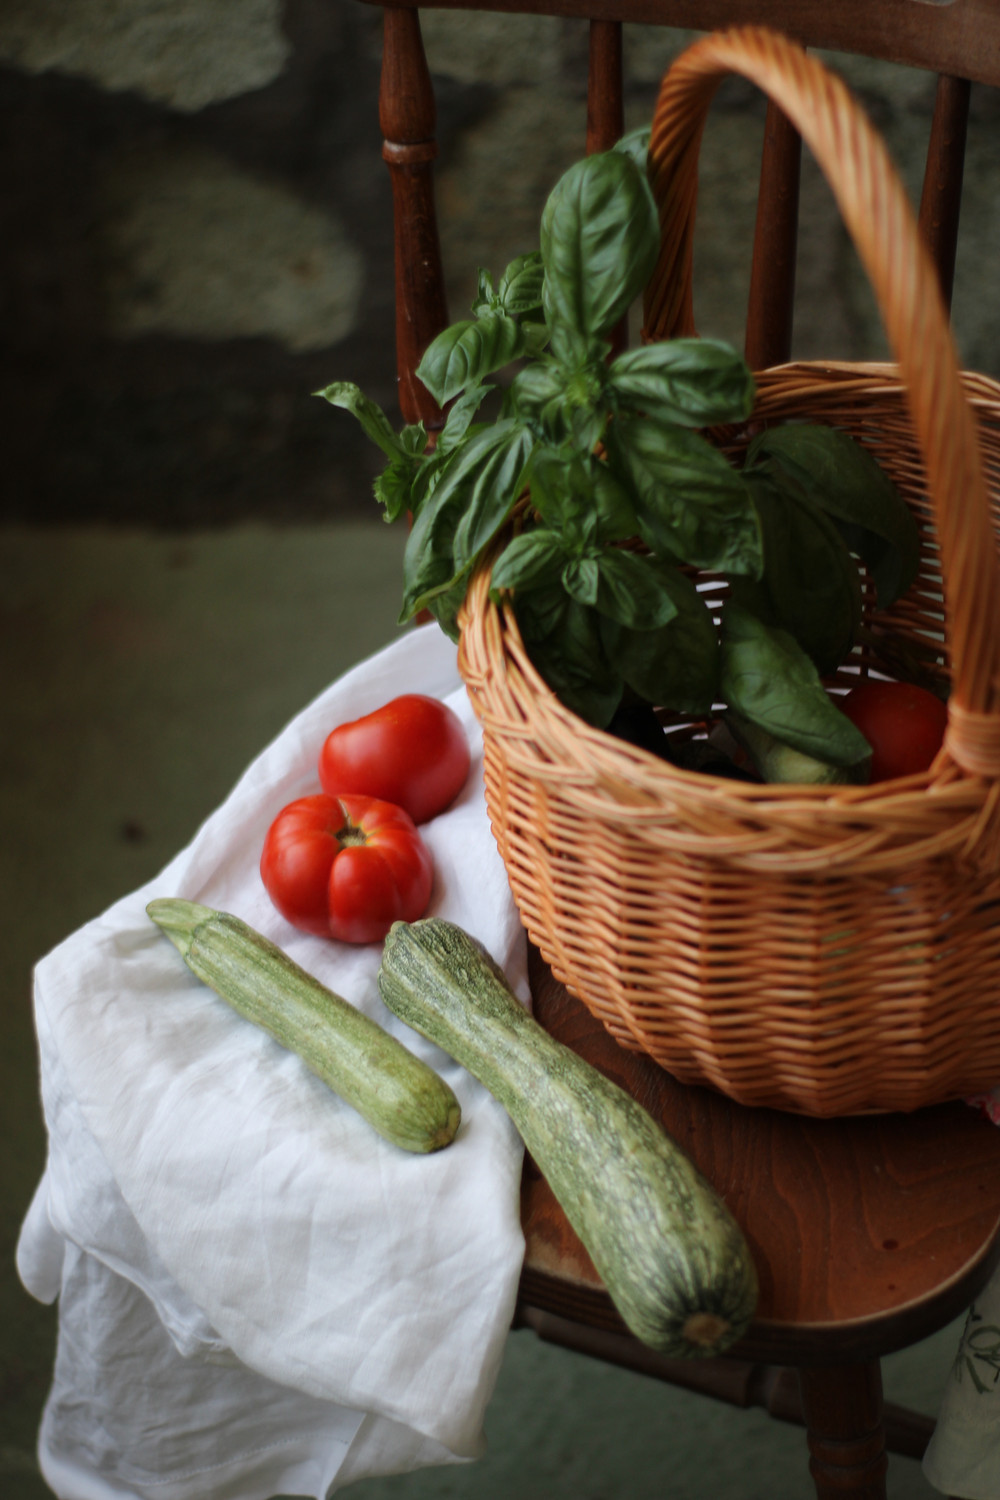 A basket of fresh basil sits on a chair next to fresh zucchini and tomatoes